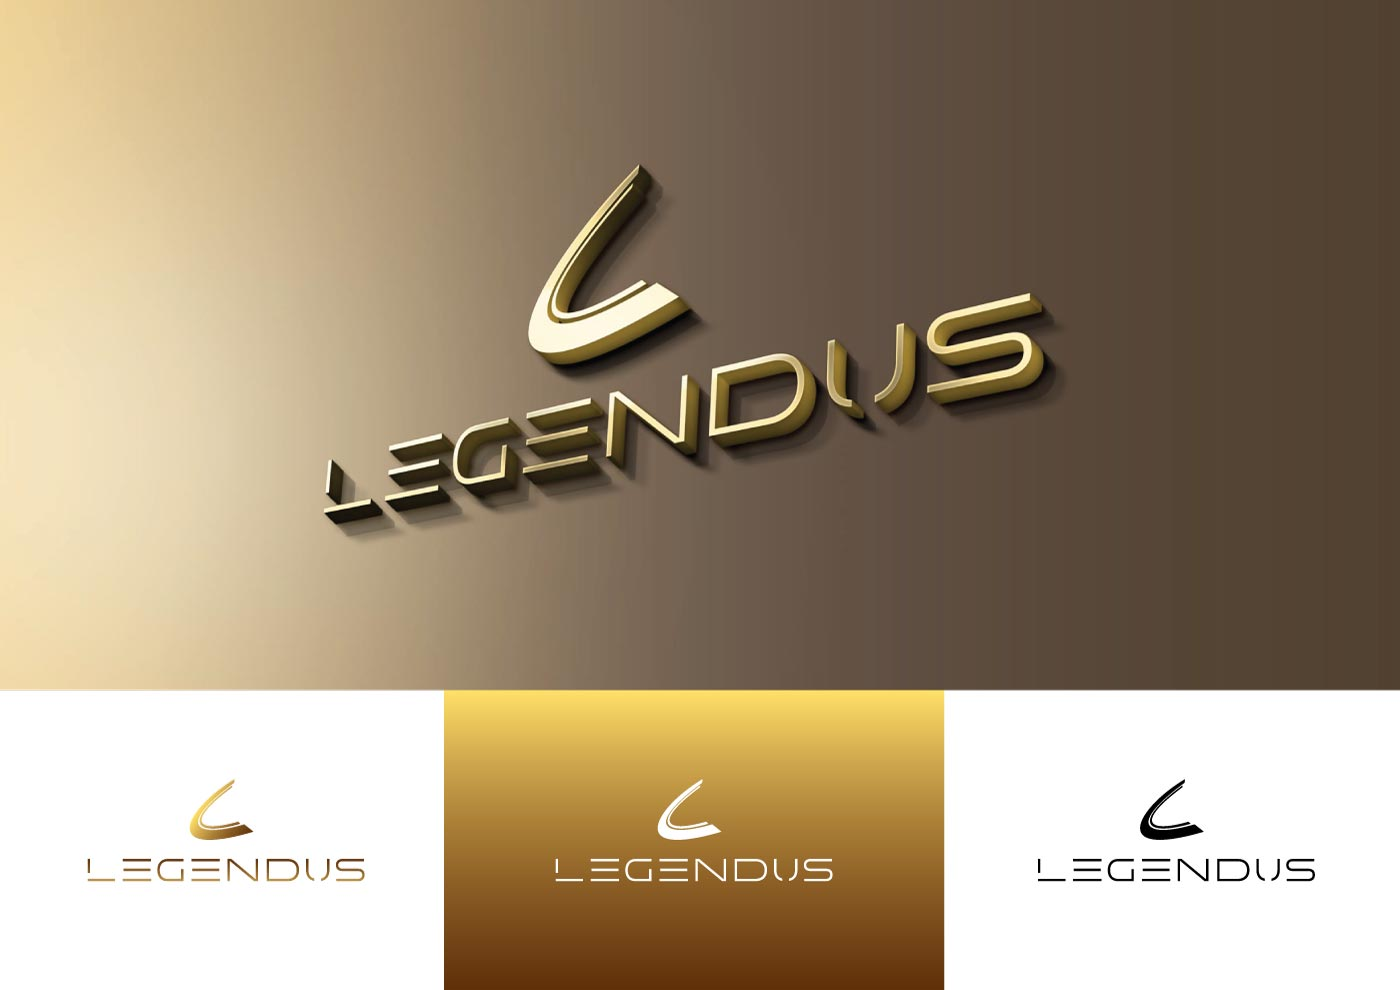 Logo de la ligne de production de lavash LEGENDUS